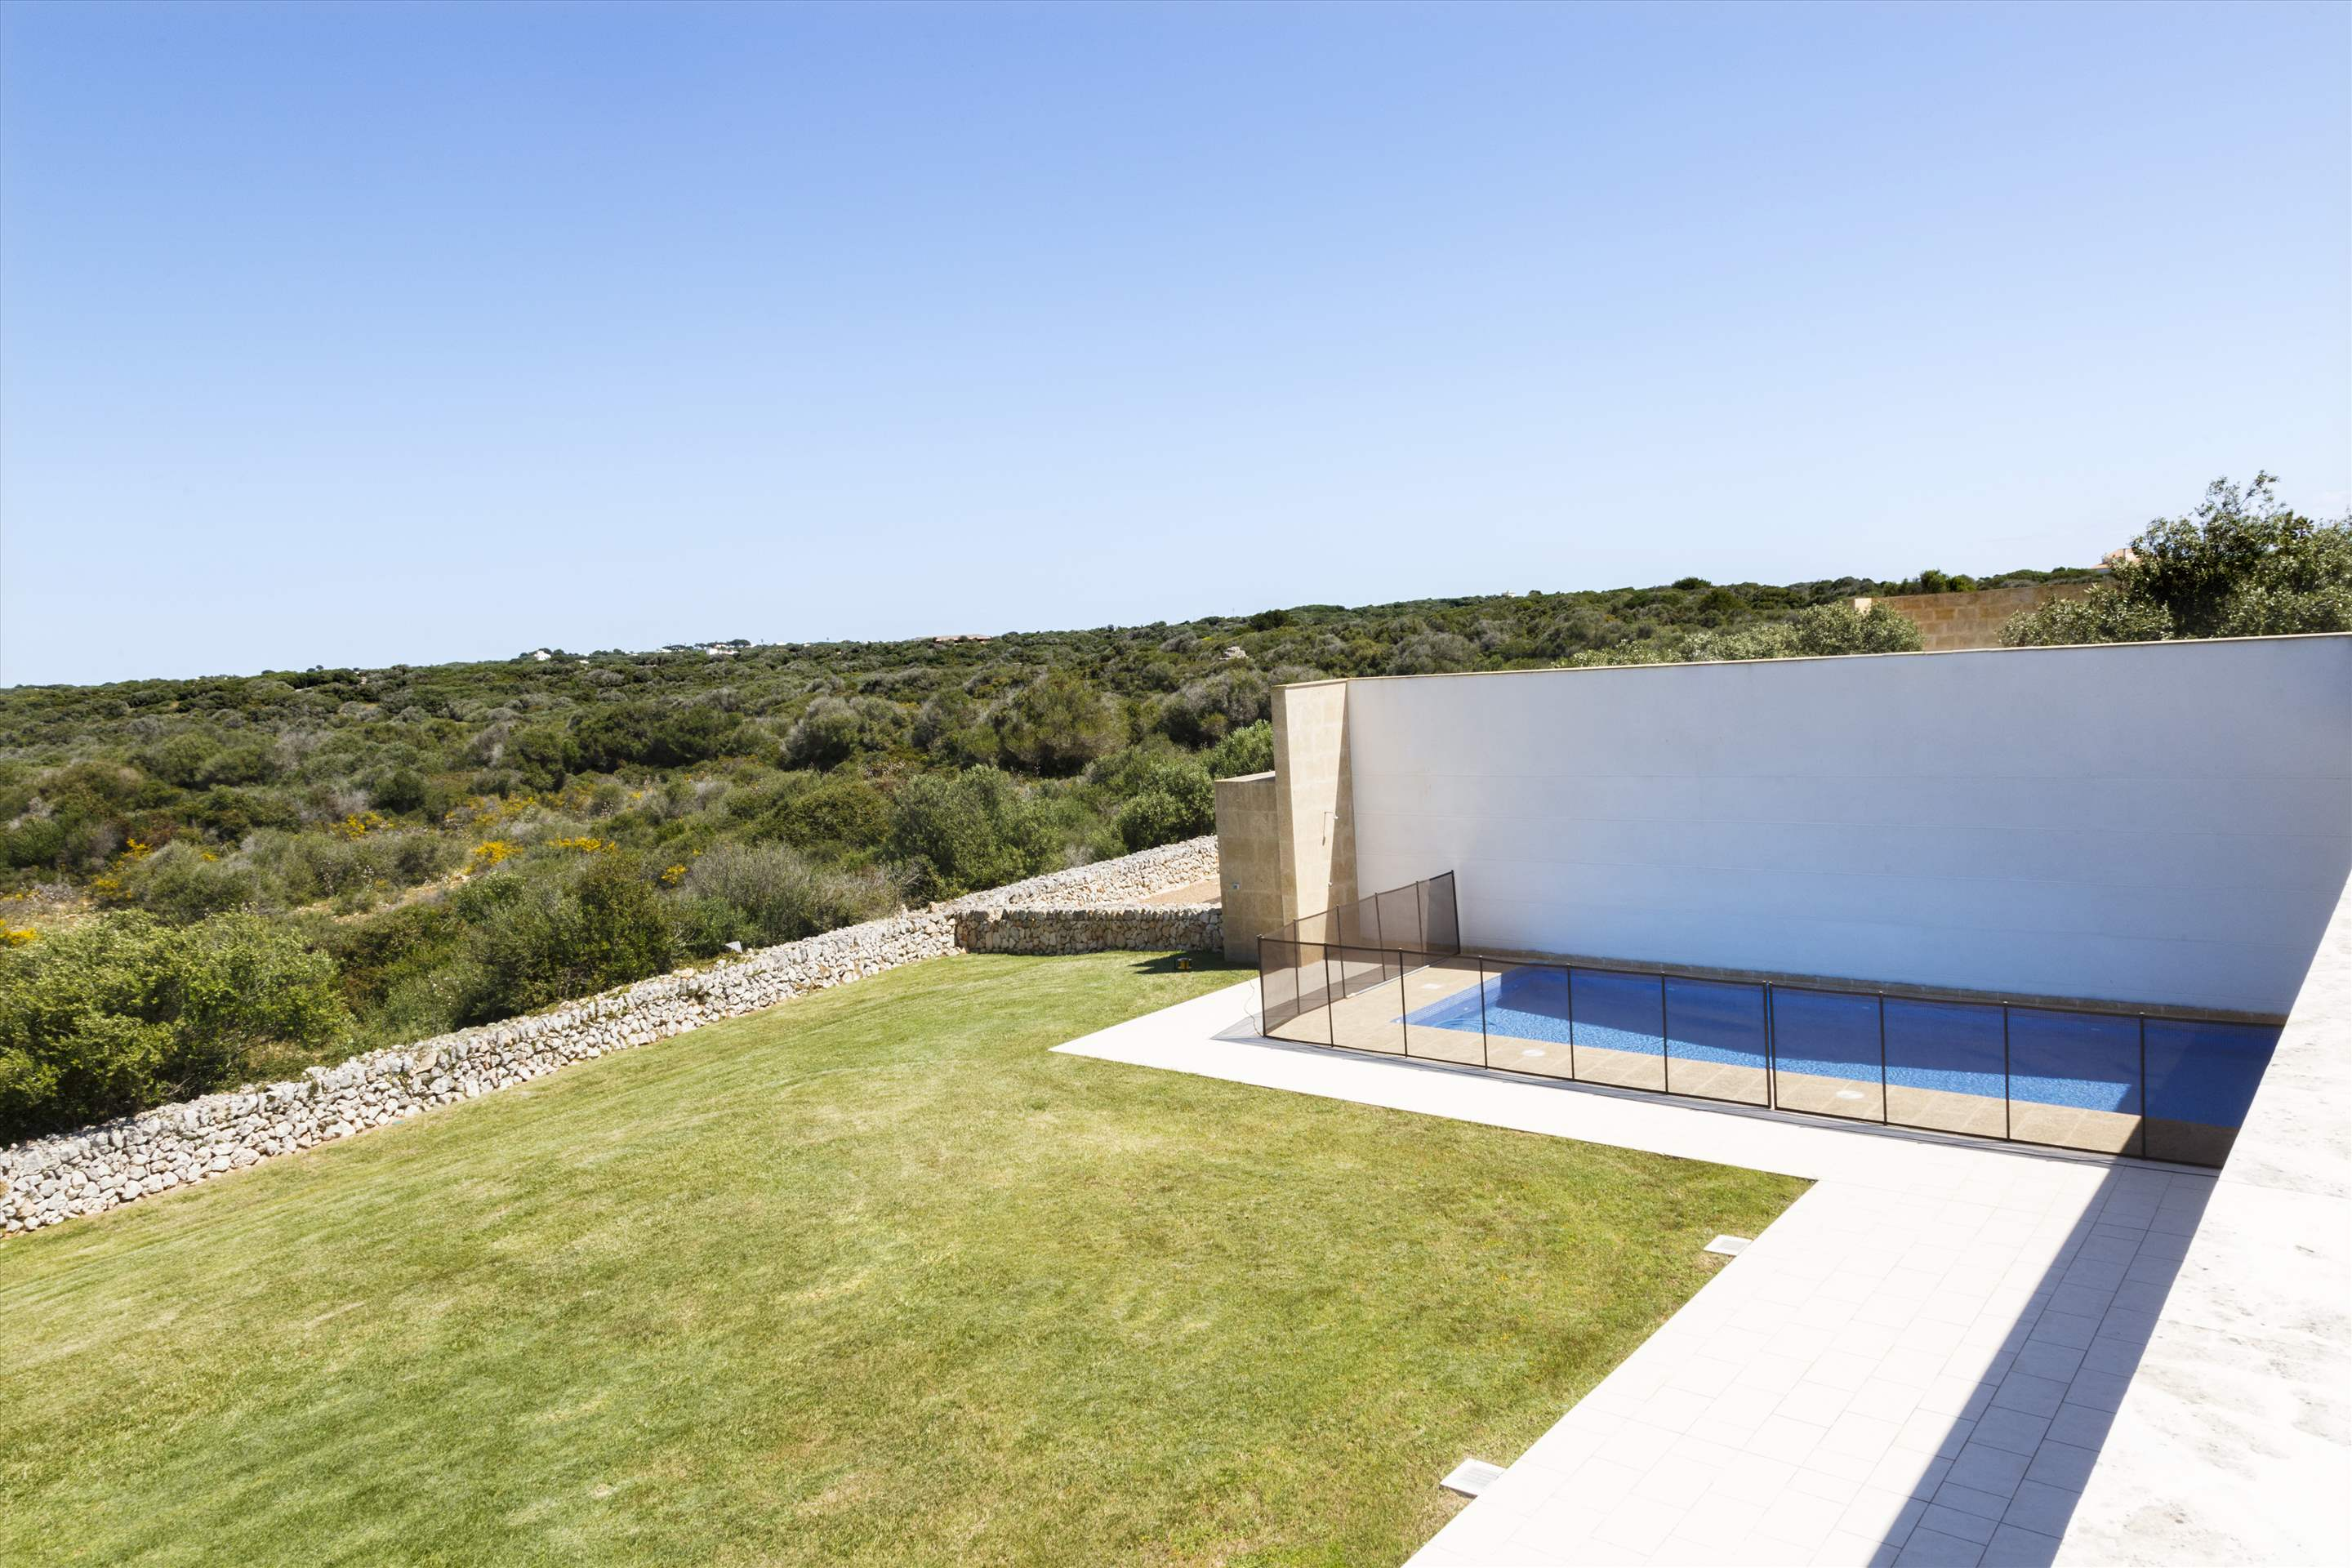 Binibeca Hills , 6 bedroom , 6 bedroom villa in Mahon, San Luis & South East, Menorca Photo #15